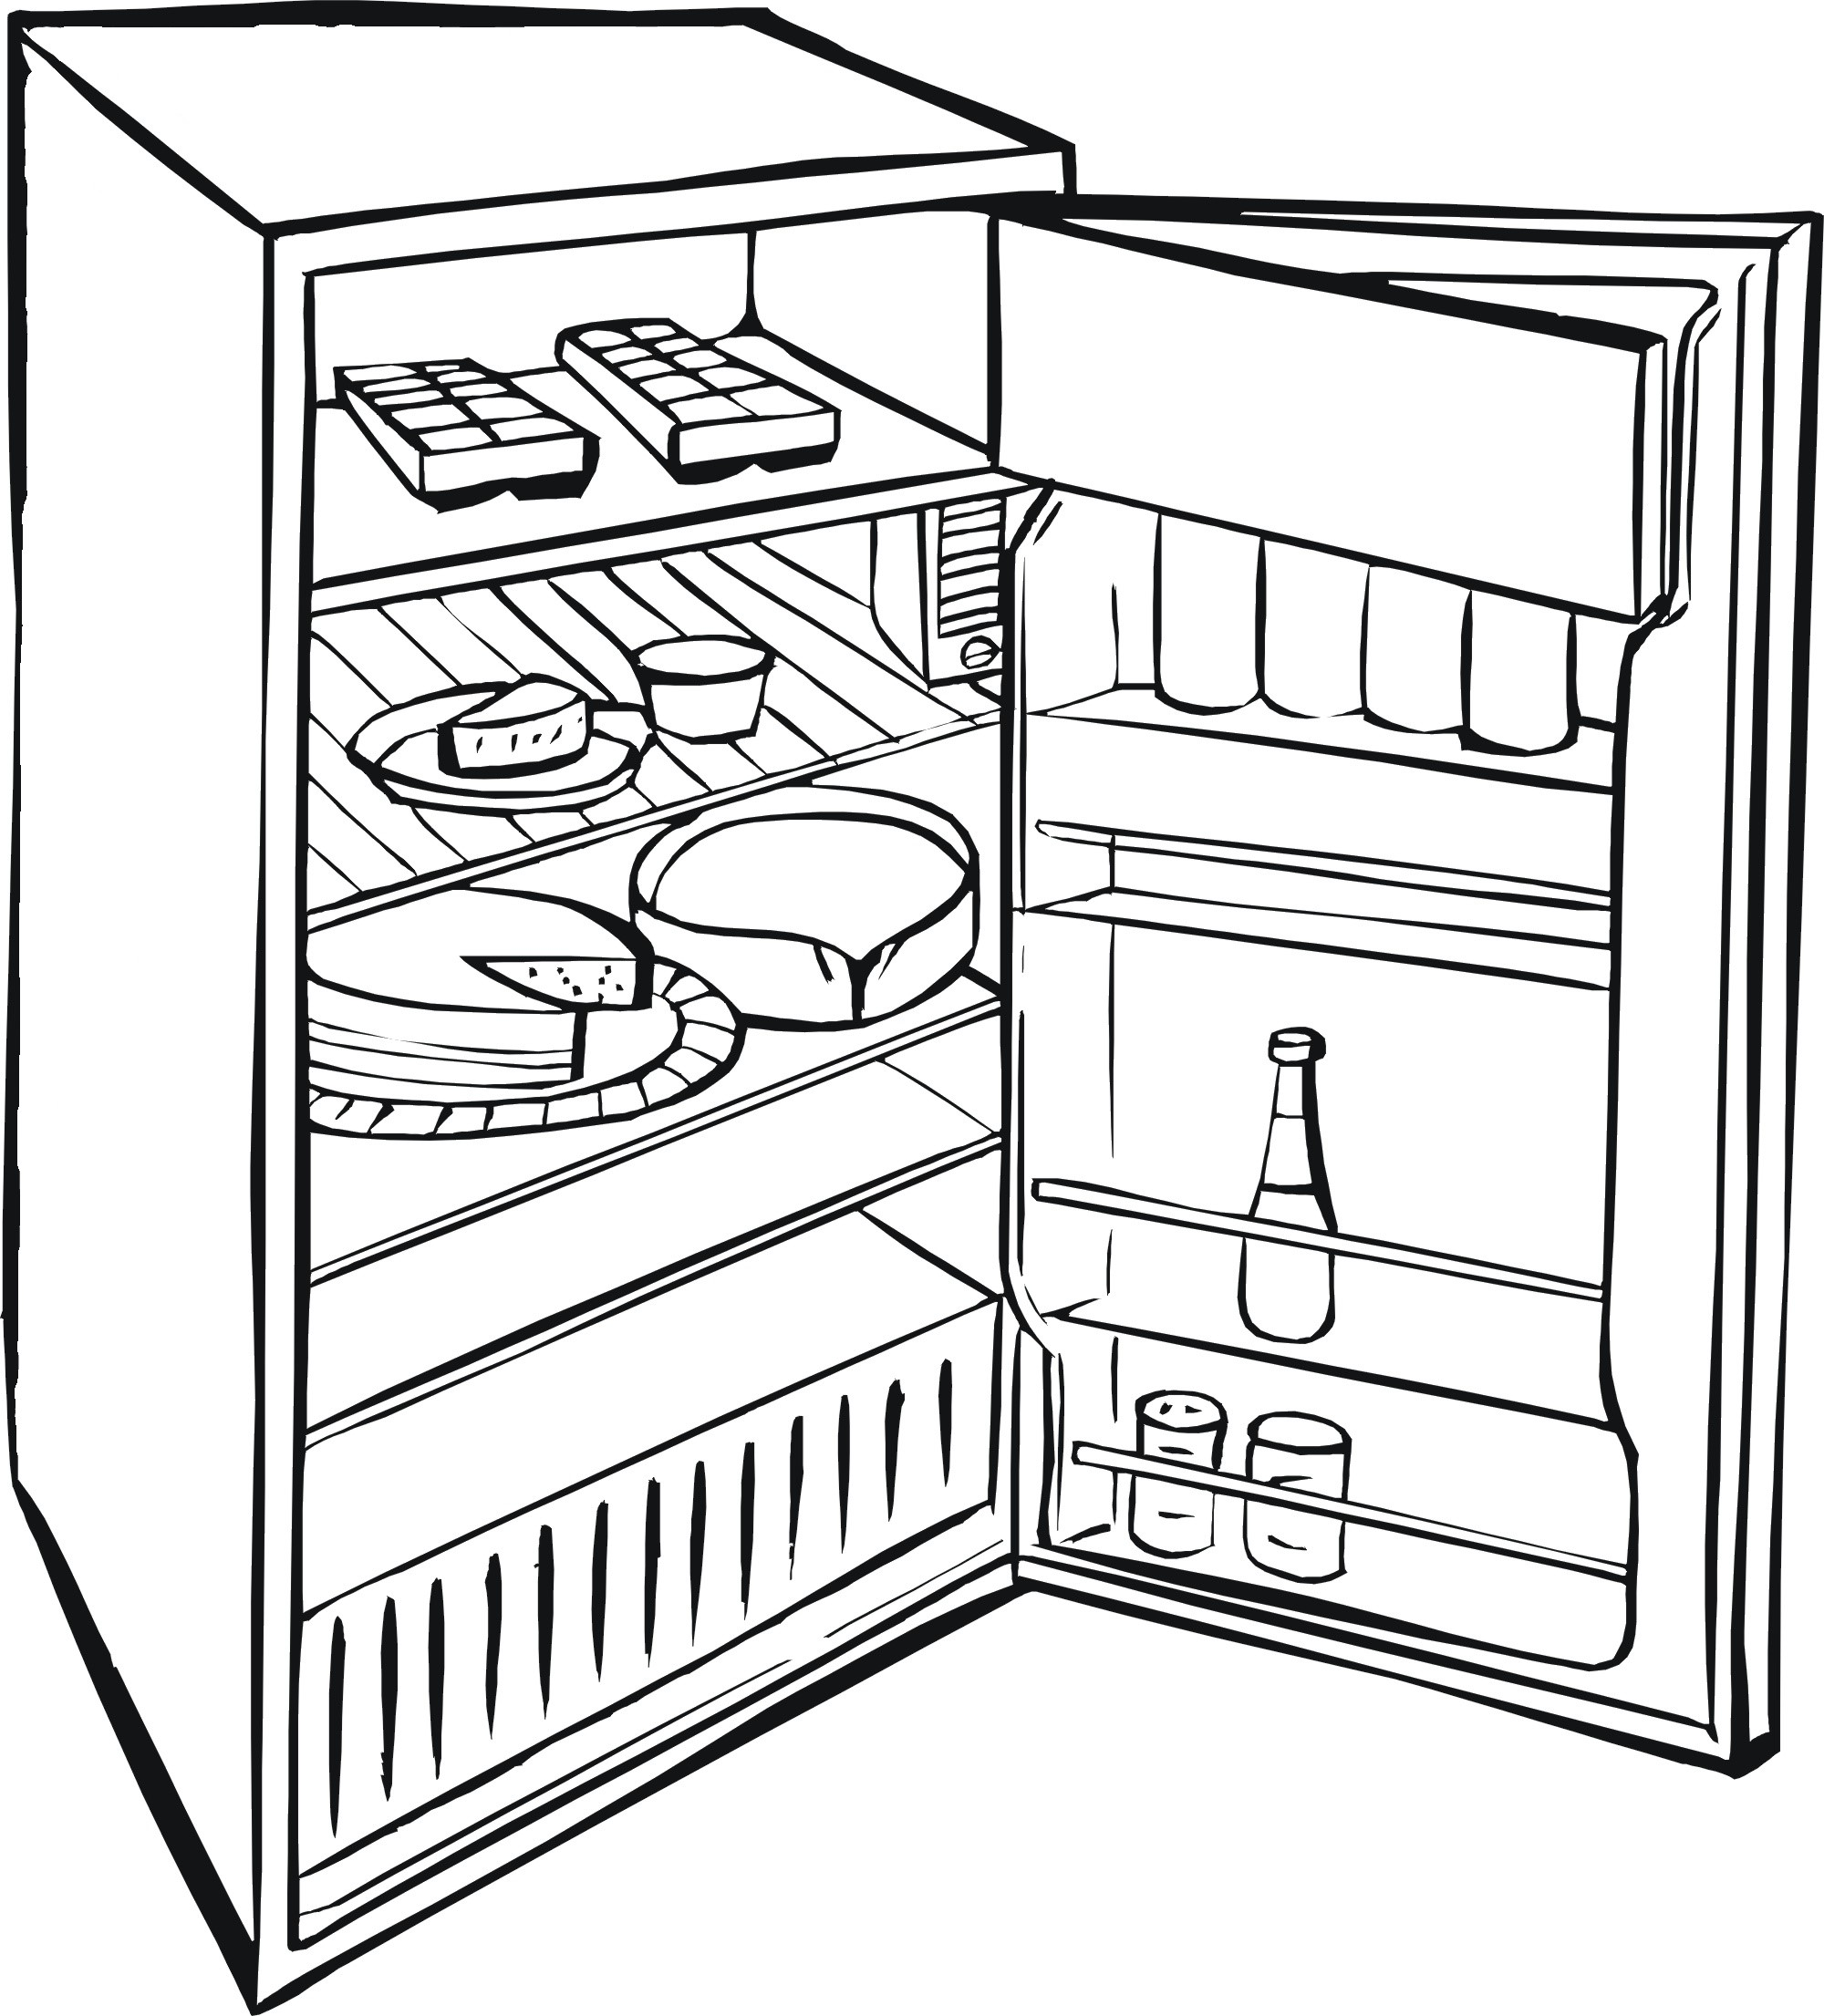 Black and white fridge clipart jpg transparent Refrigerator Sketch at PaintingValley.com | Explore collection of ... jpg transparent